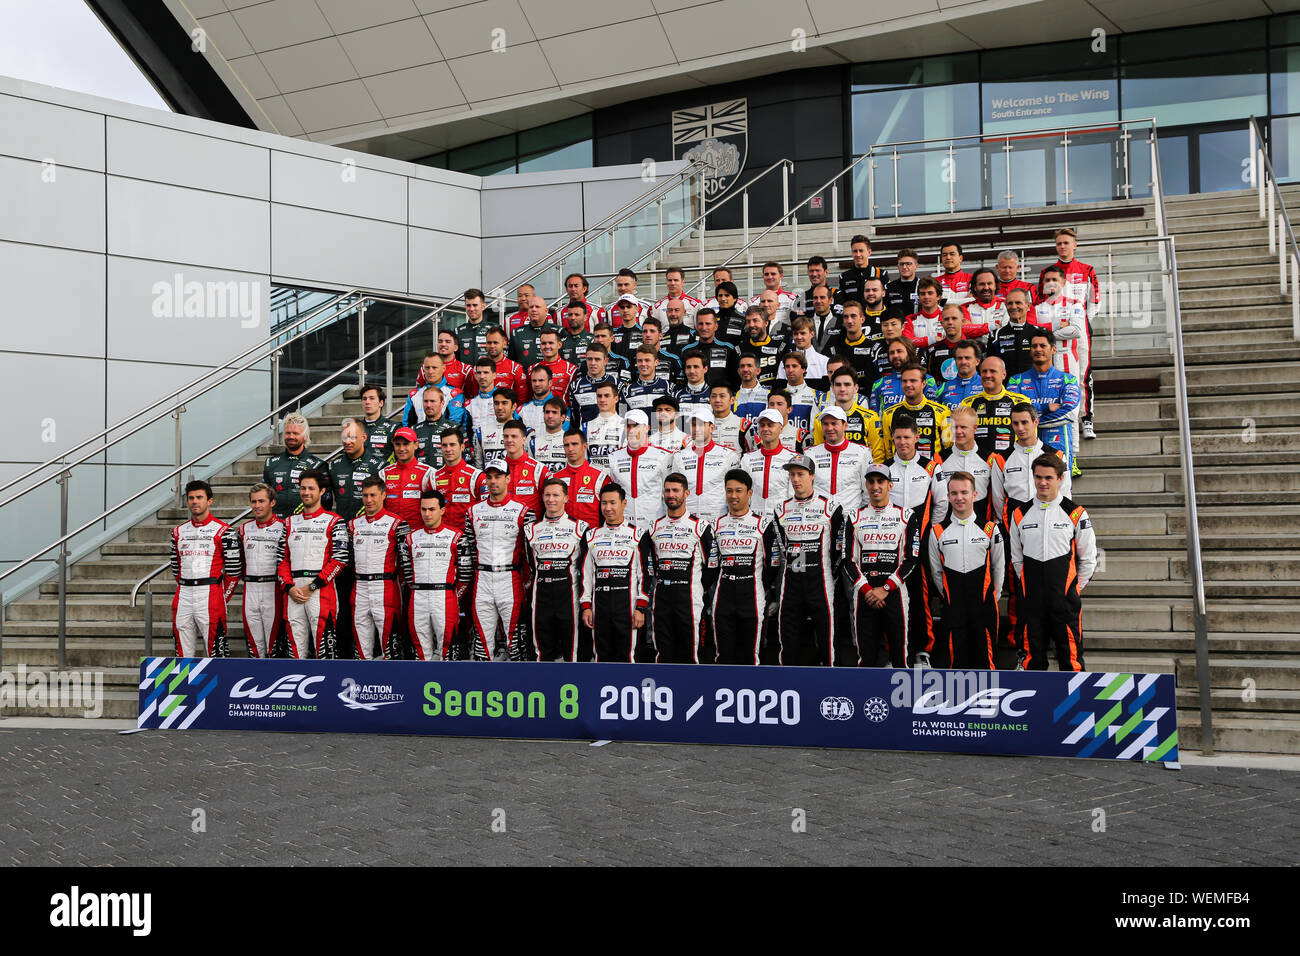 Competitors in the 2019-20 FIA World Endurance Championship pose for a group photo ahead of the opening round at Silverstone Stock Photo